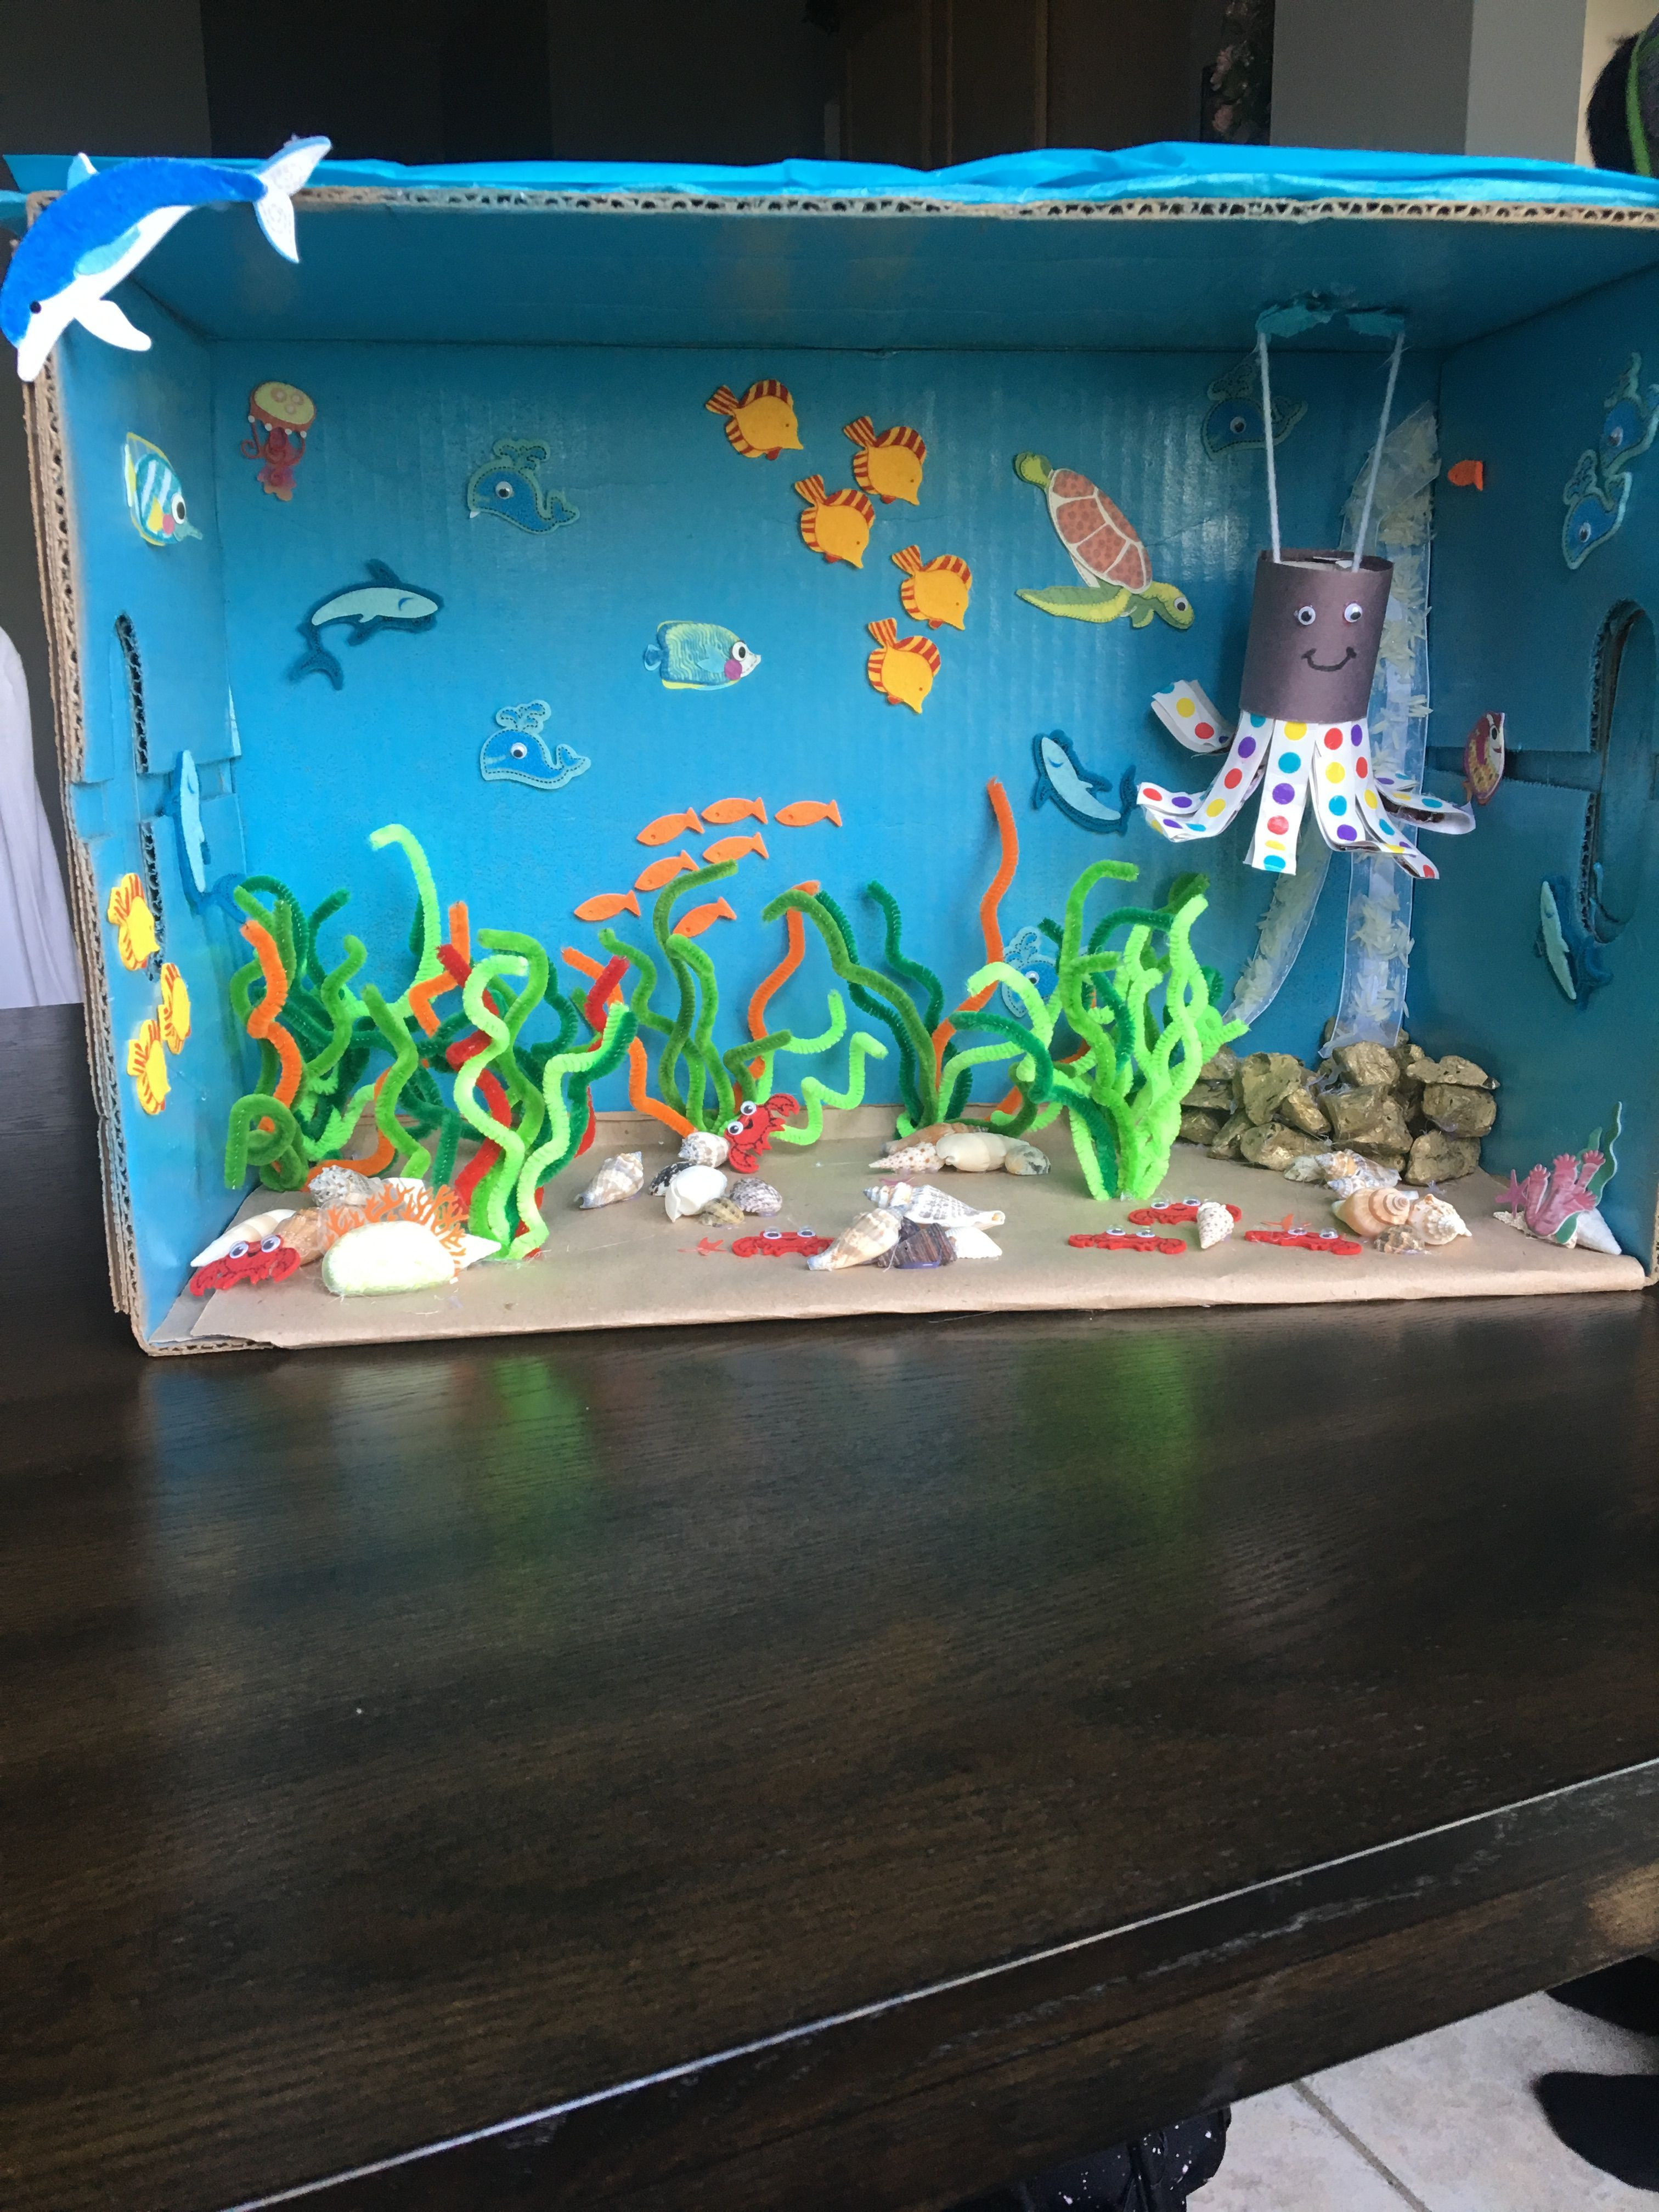 Diorama Ideas For Kids School Projects + Projects School Ideas